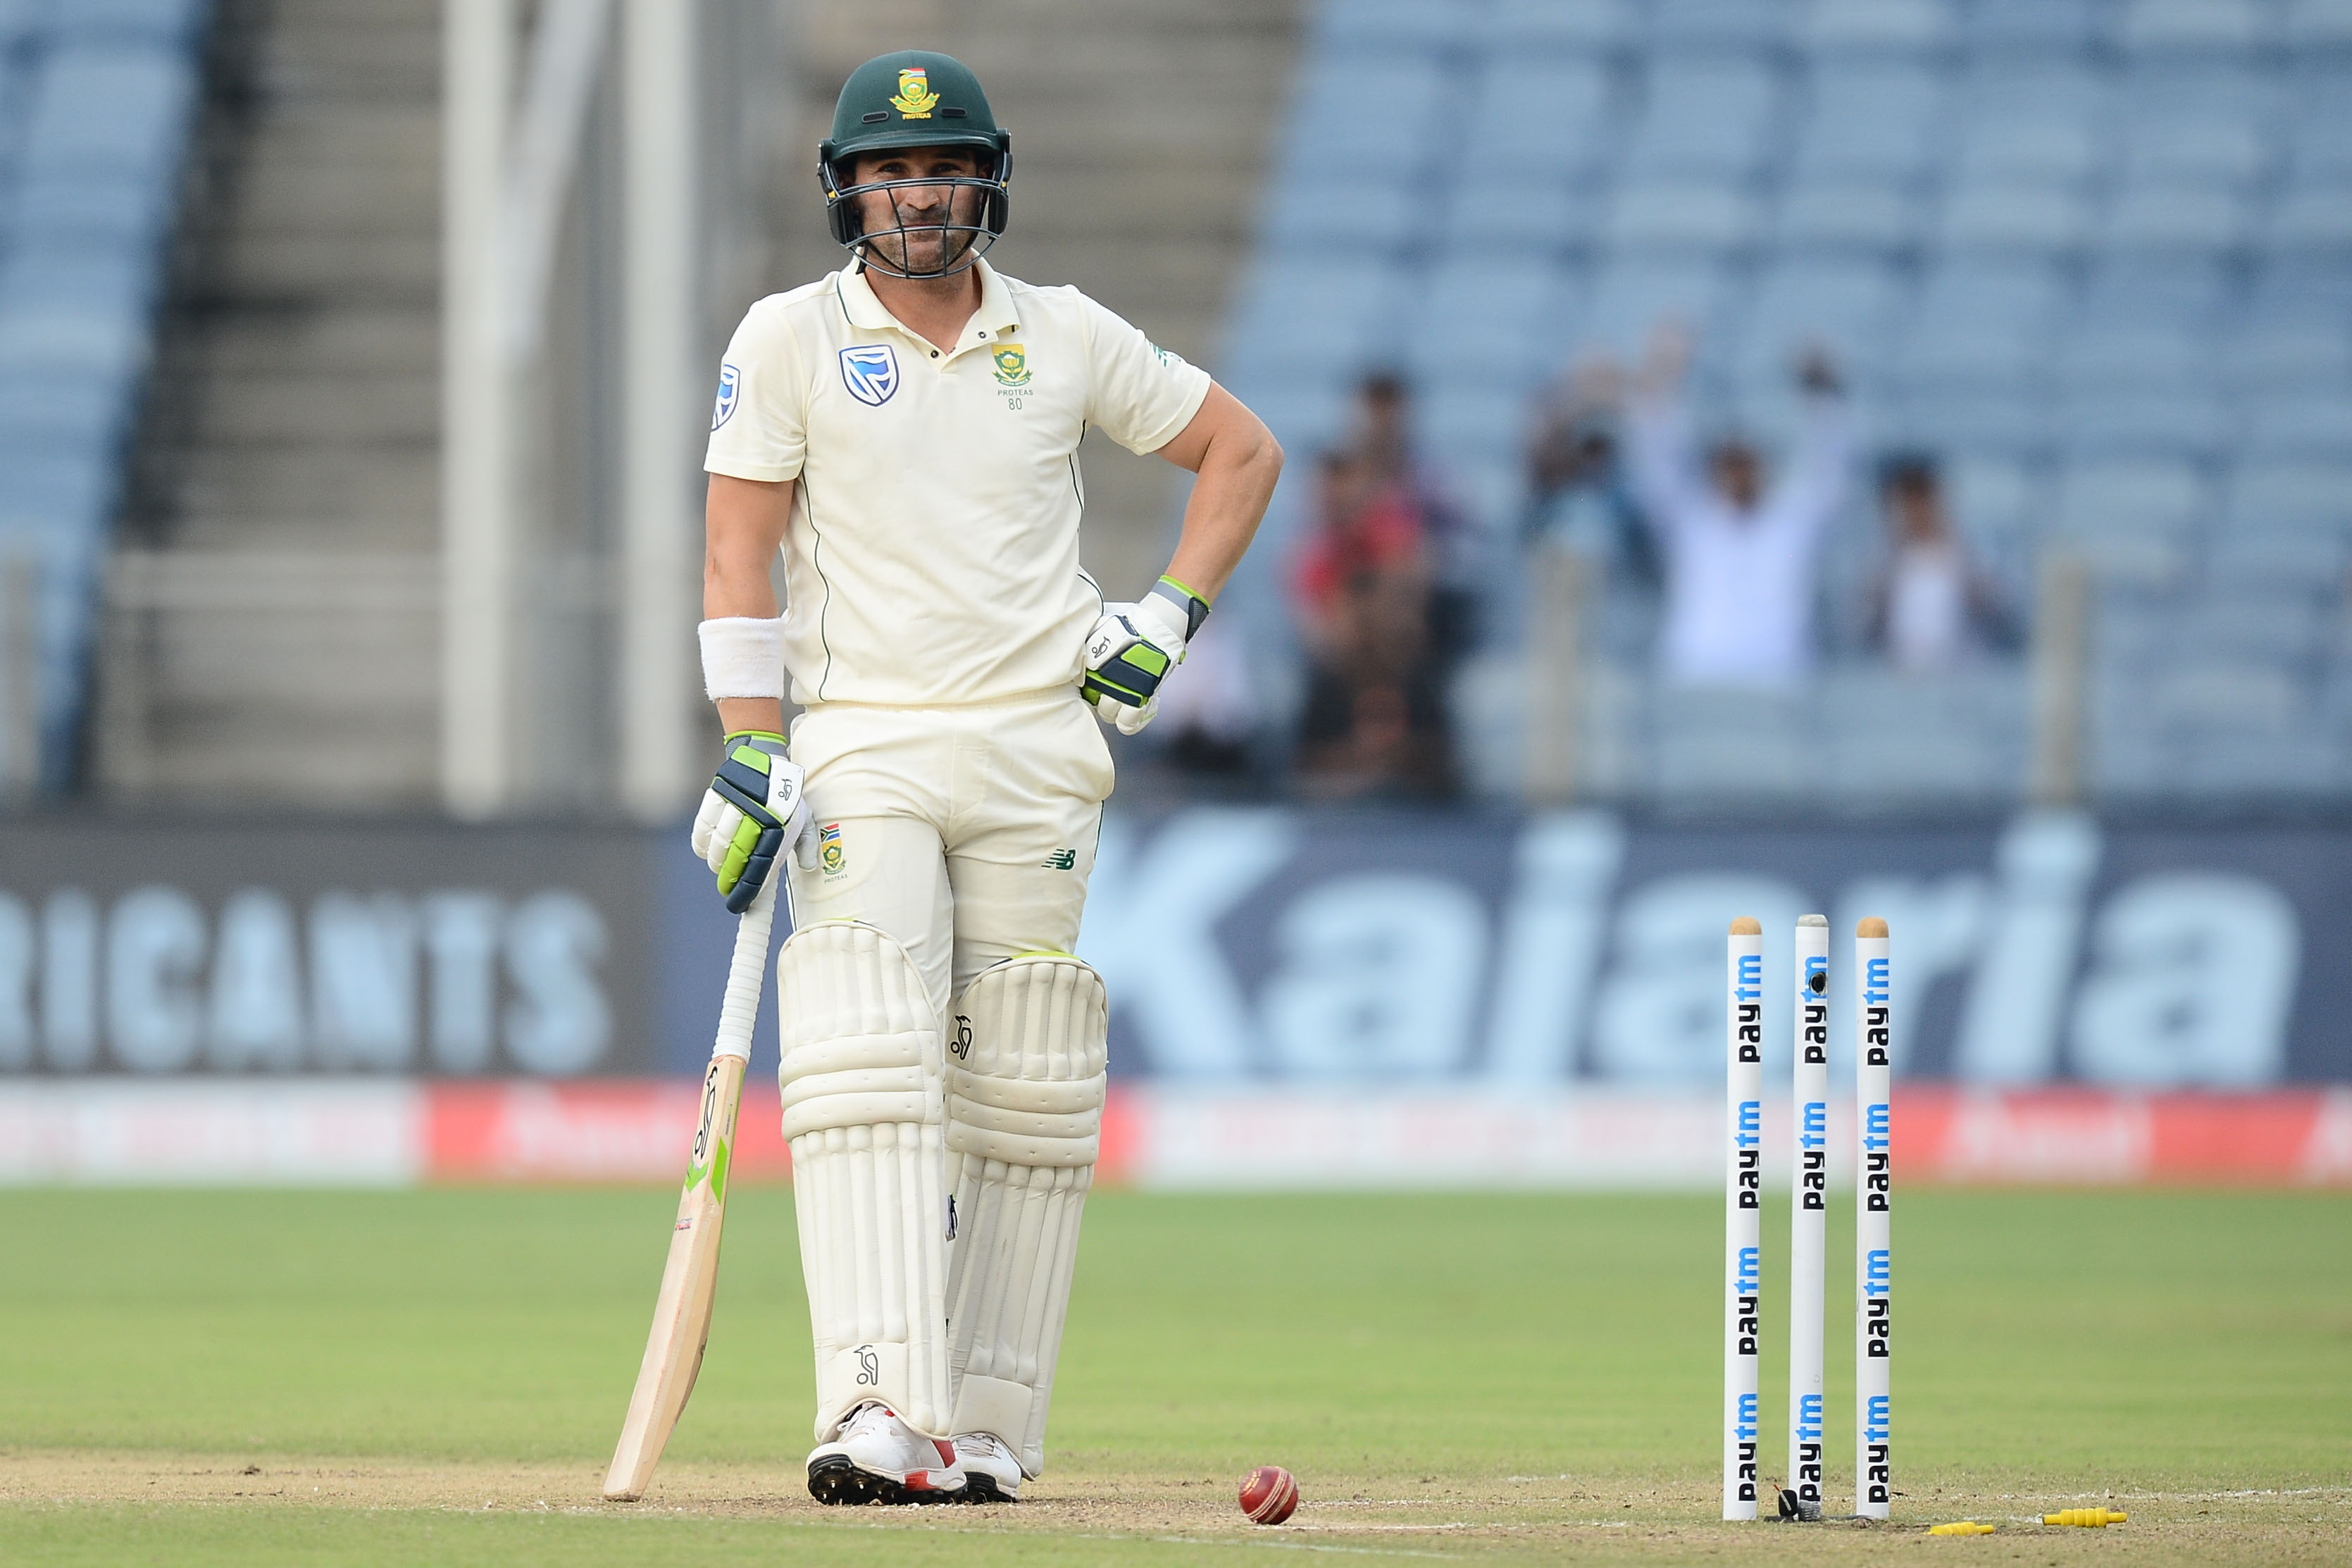 11 October 2019: South Africa's Dean Elgar after being bowled out on day two of the second Test against India at Maharashtra Cricket Association Stadium in Pune, India. (Photograph by Isuru Sameera Peris/Gallo Images)